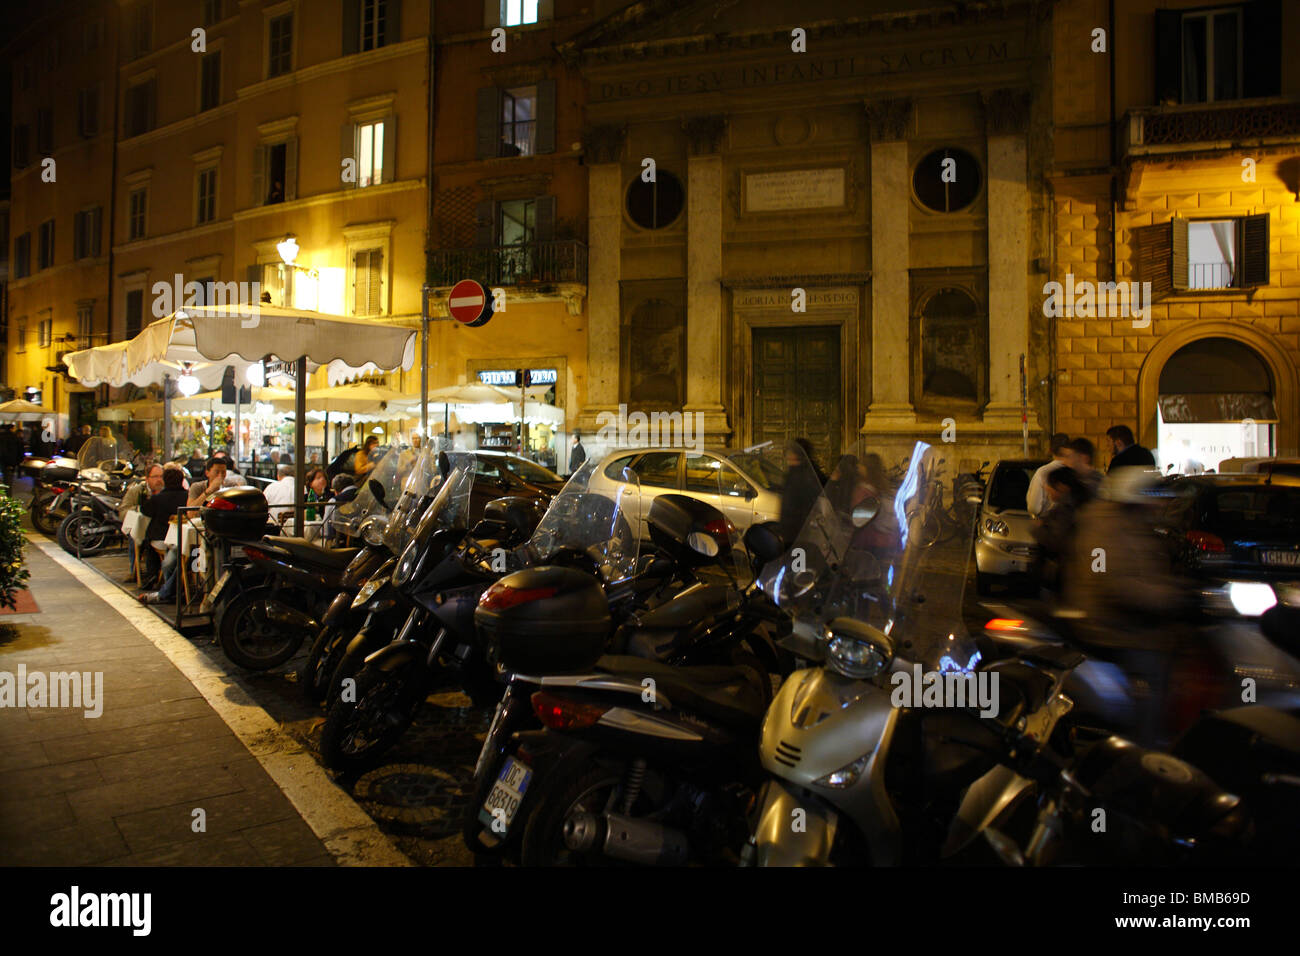 Motorcycles and scooters parking, Rome, Italy - Stock Image